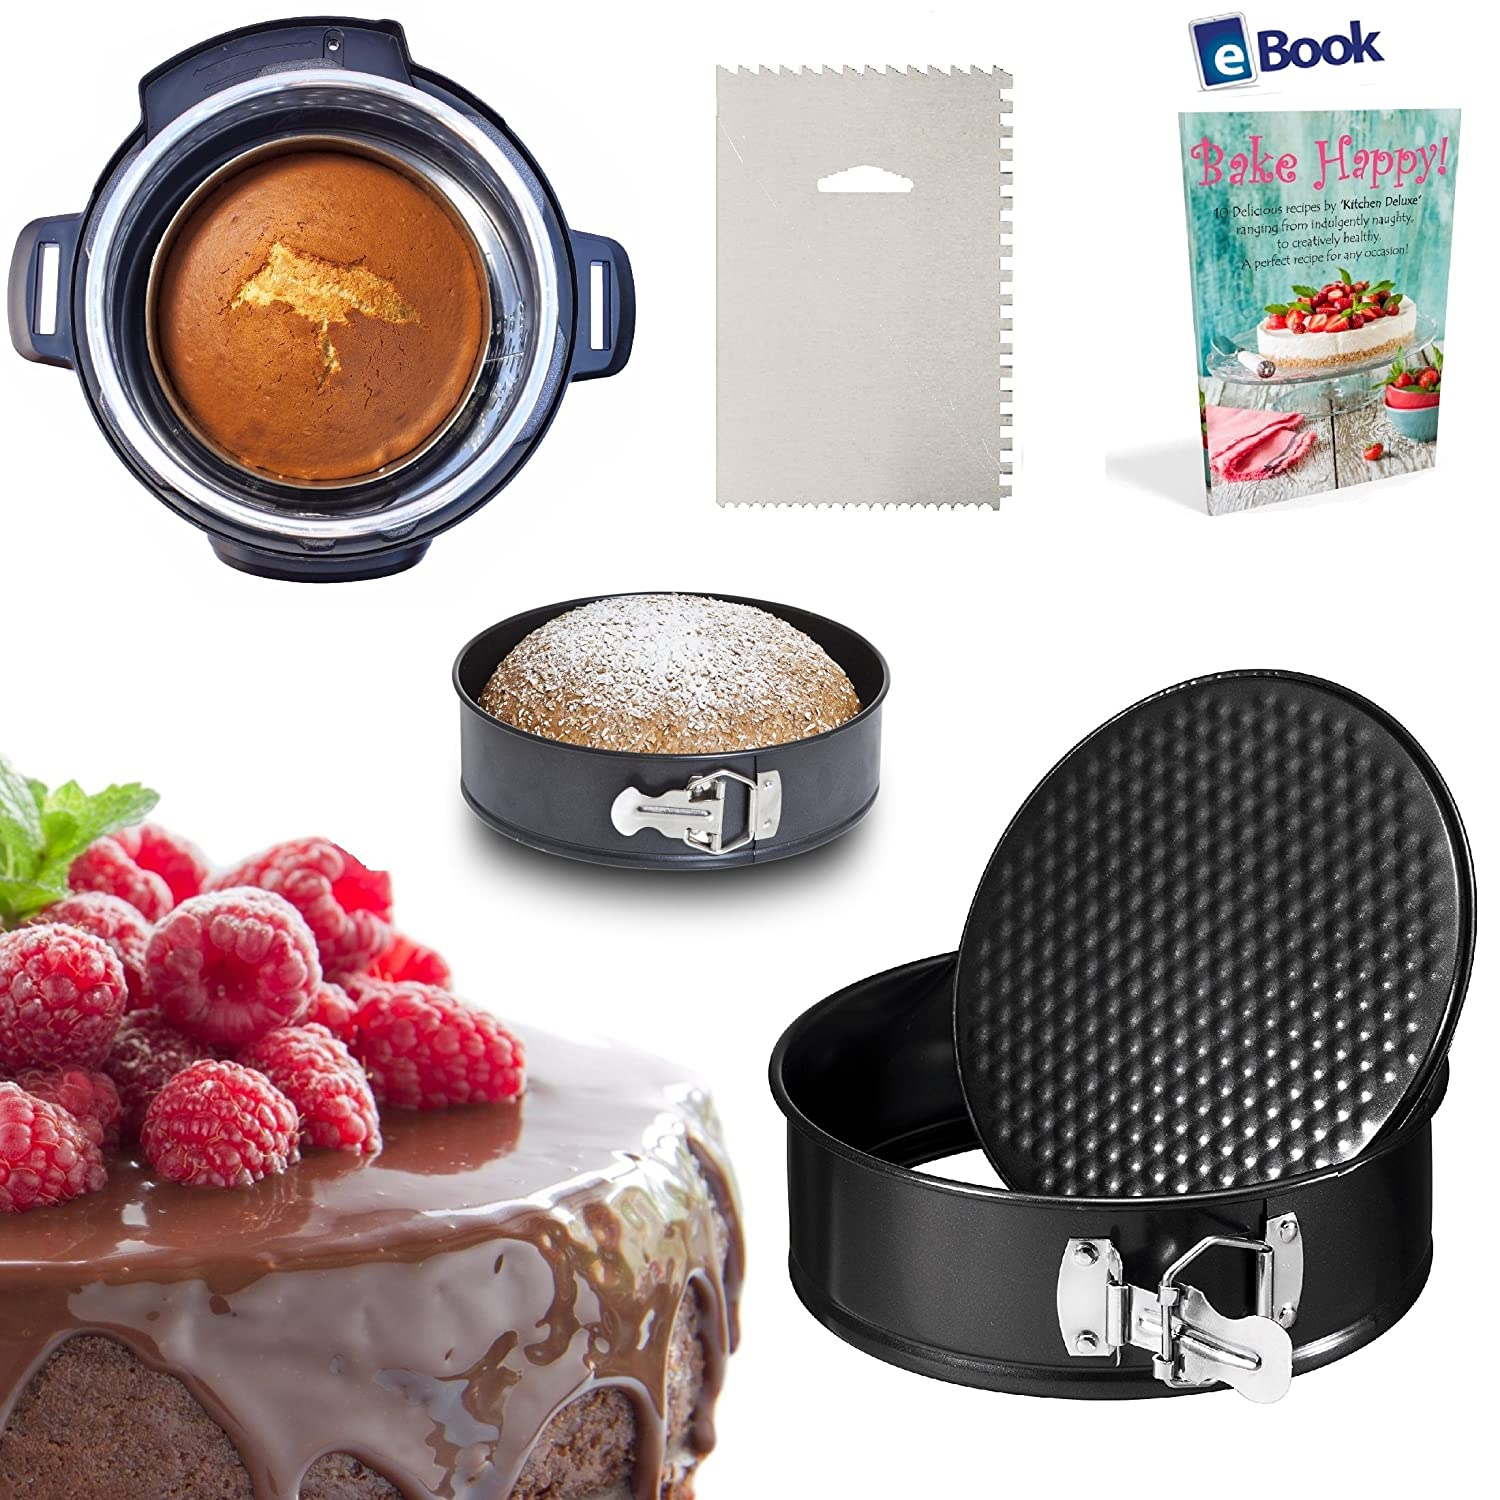 PREMIUM Springform Cake Pan - LEAKPROOF - 7 Inch - BEST Bundle - Fits Instant Pot Pressure Cooker 5, 6 Qt & 8 Quart - BONUS Accessories - Icing Smoother + eBook - Round Cheesecake Tin | For Instapot Kitchen Deluxe